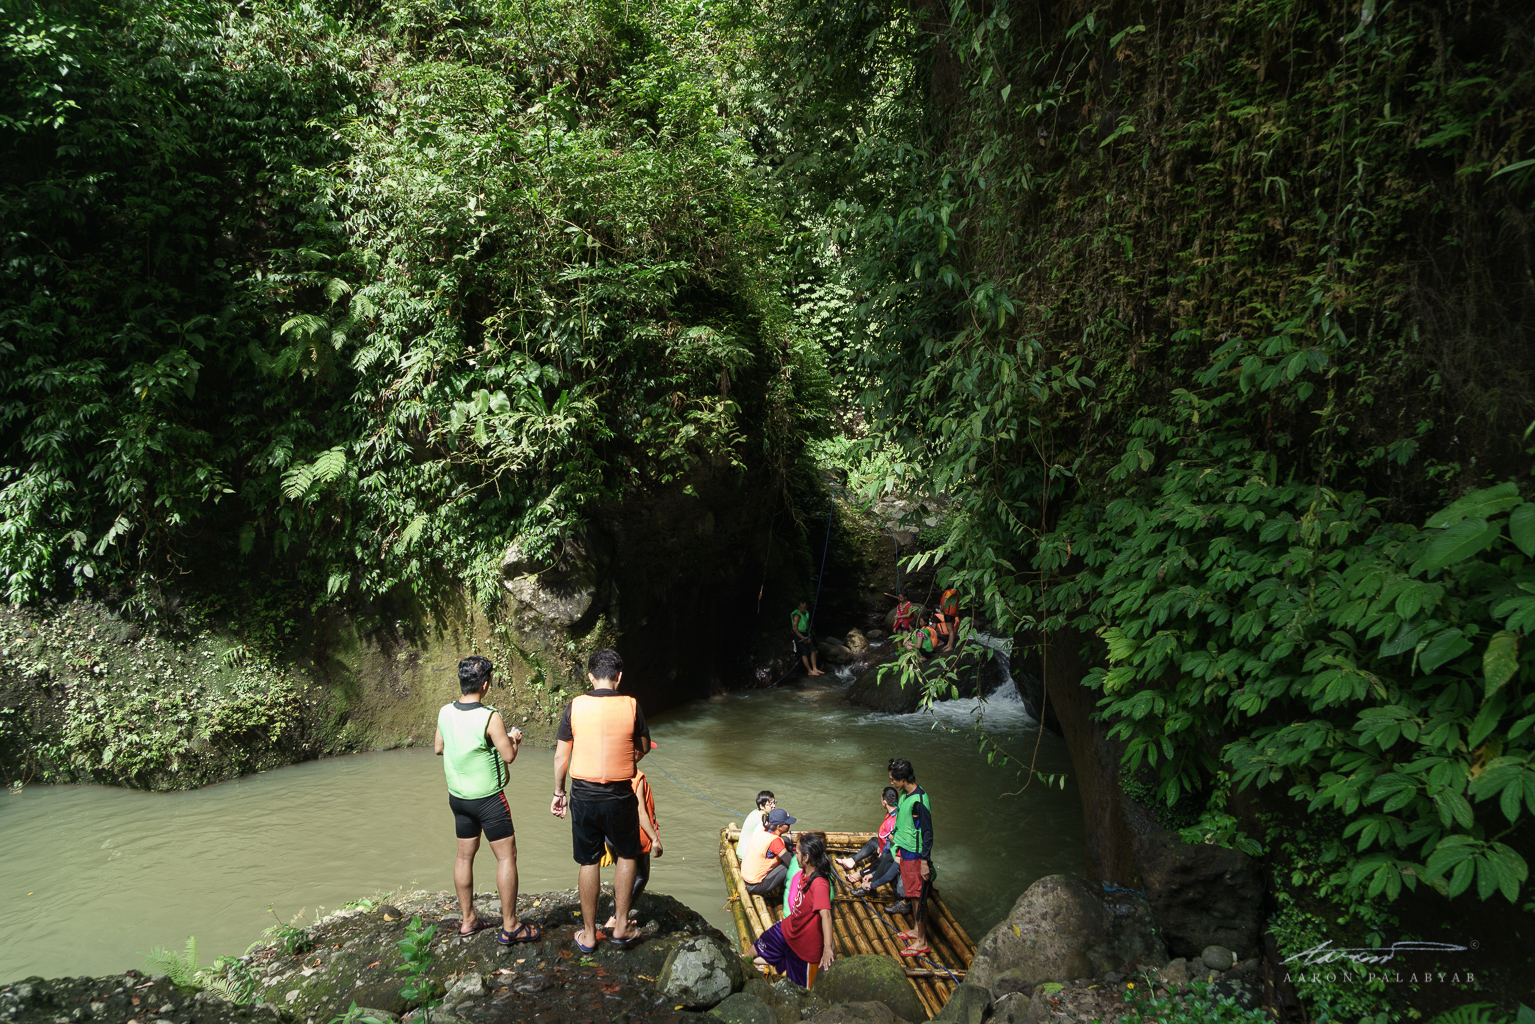 We get ready for another crossing as the canyon walls close in around the river